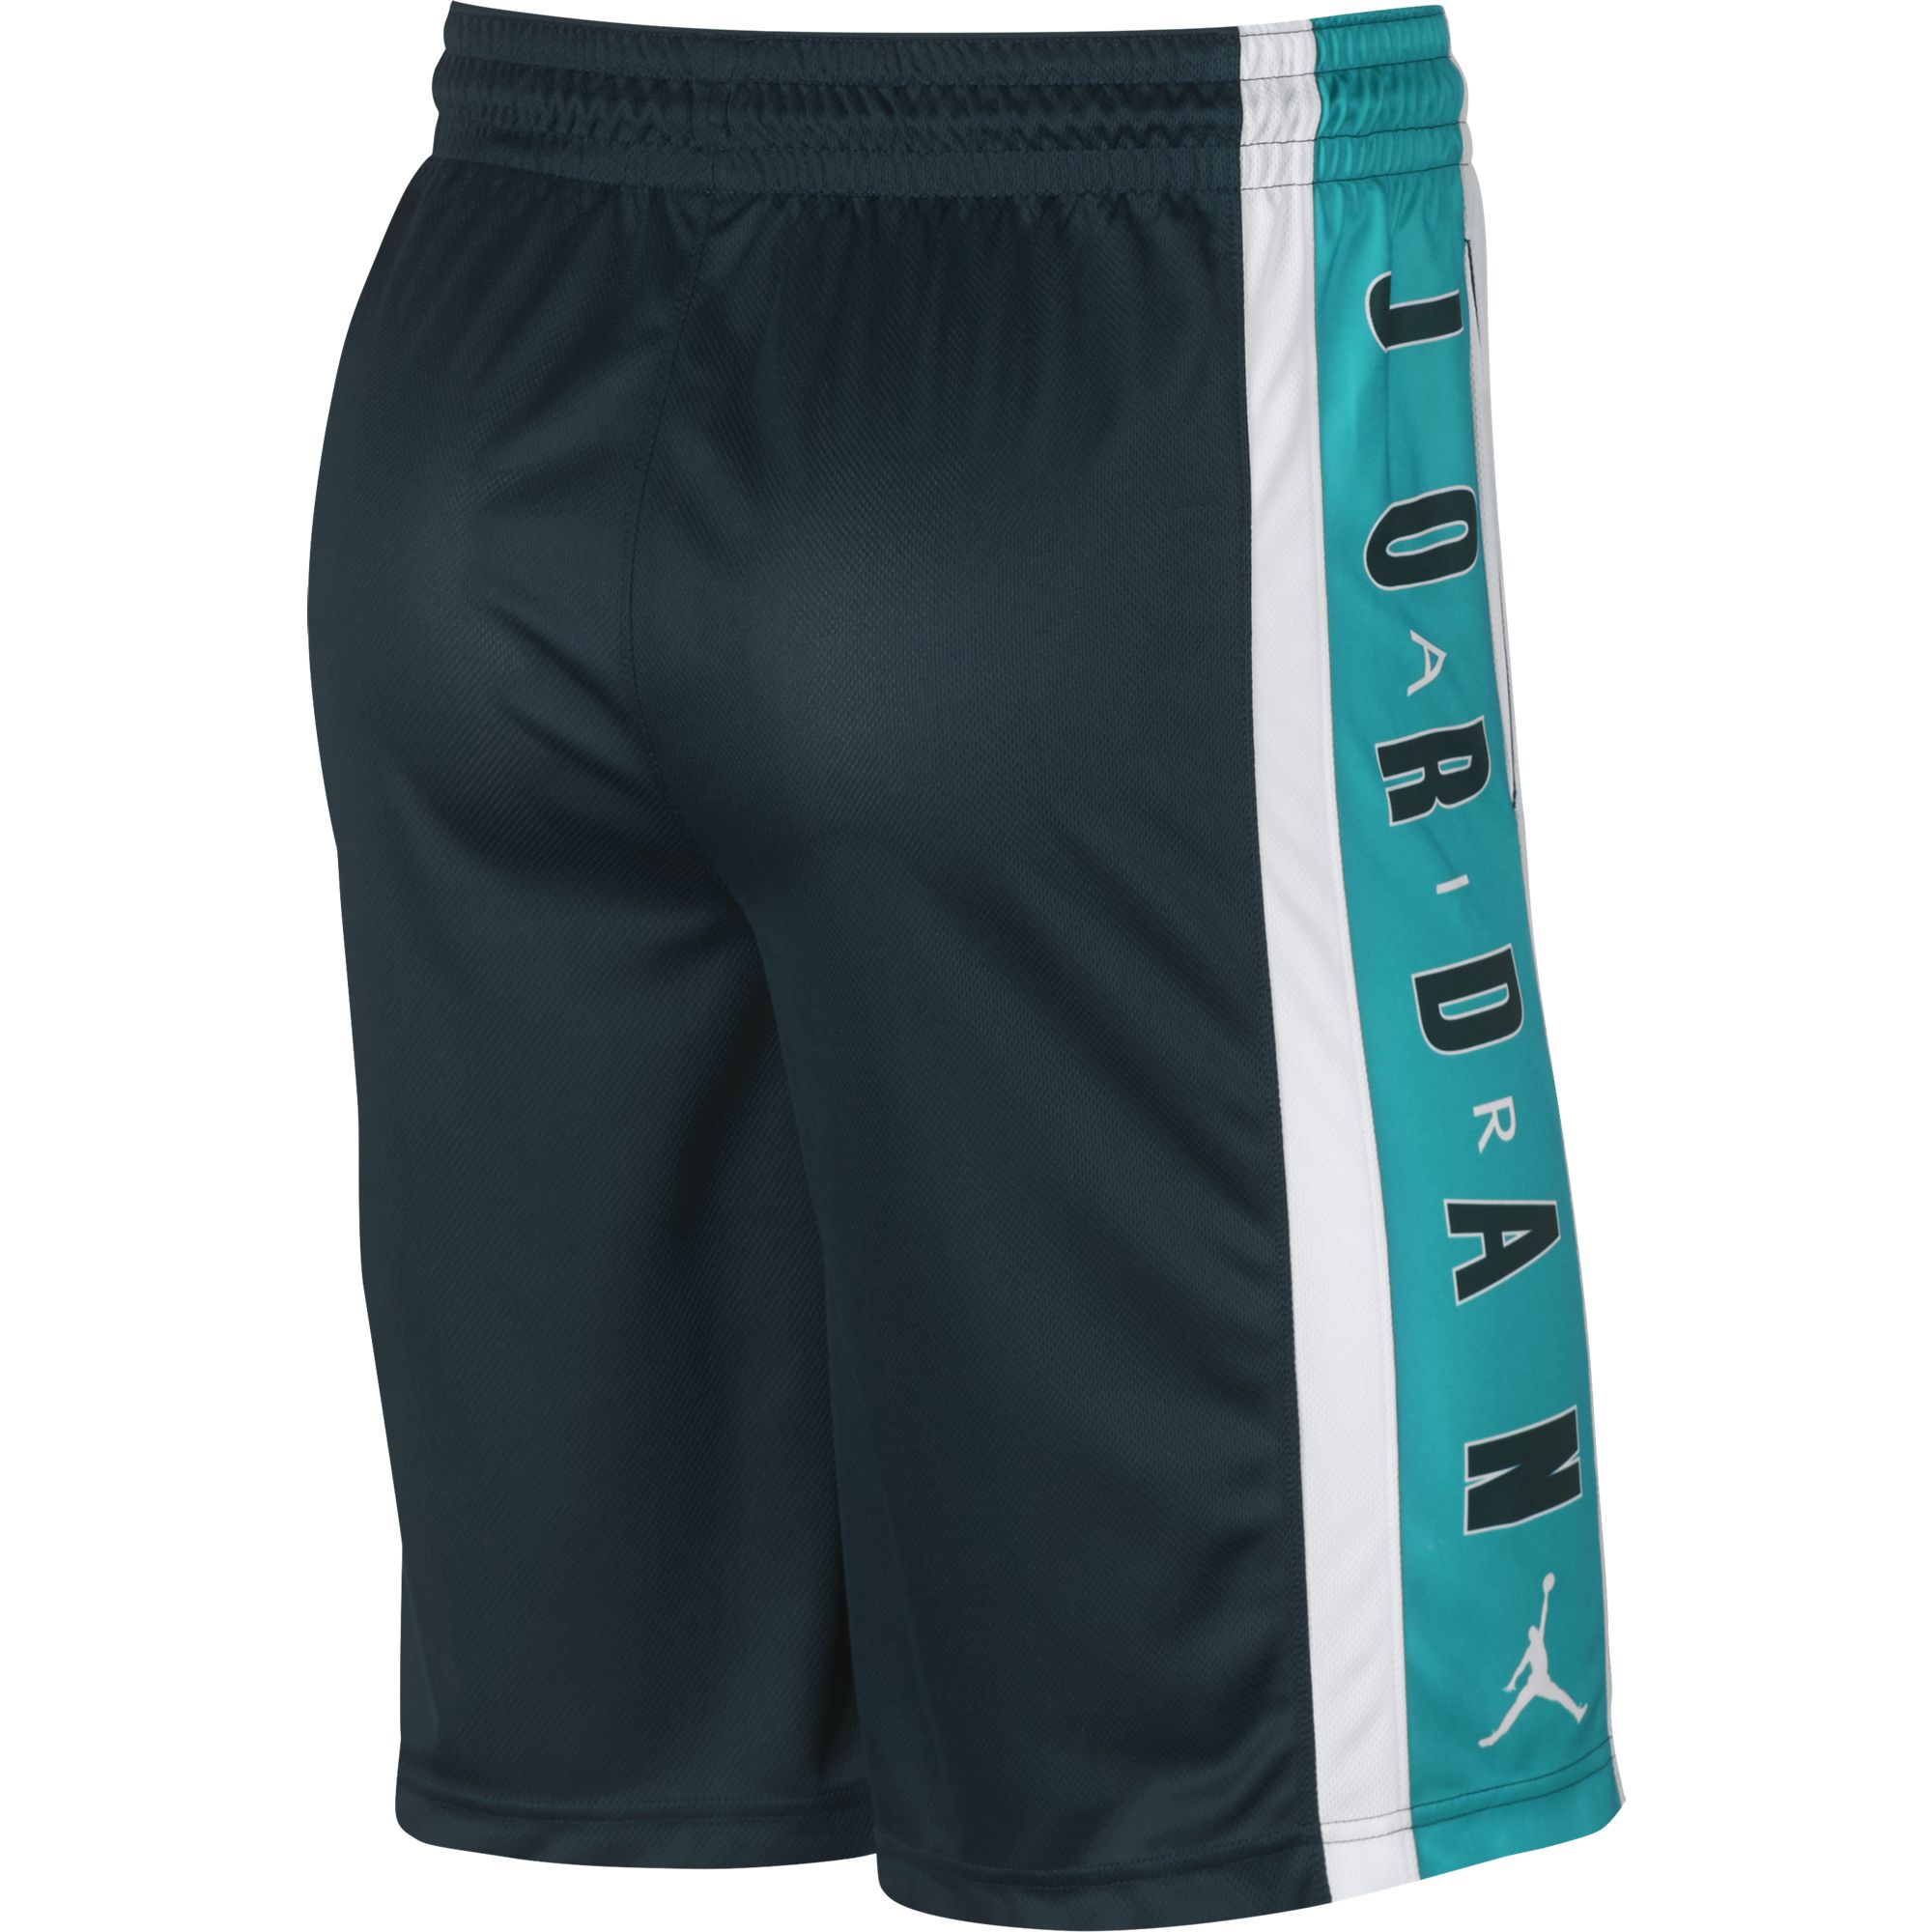 Nike Jordan Breathe Rise 3 Basketball Shorts - Midnight Spruce/White/Turbo Green